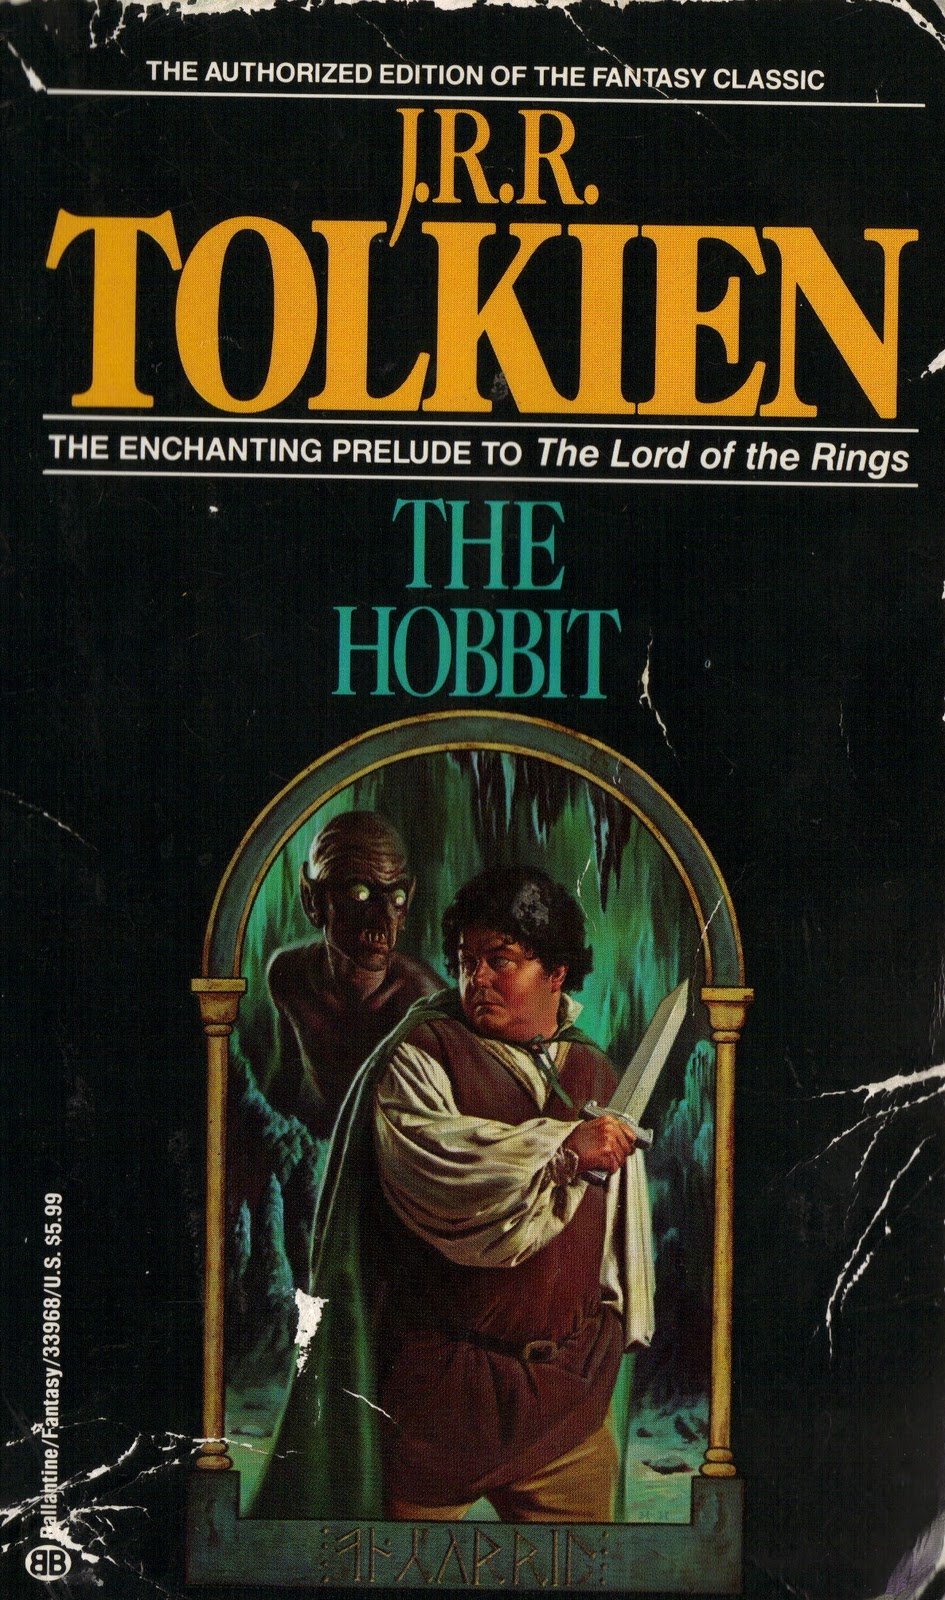 The Hobbit Book Cover Art : But is it canon the hobbit this worst cover art